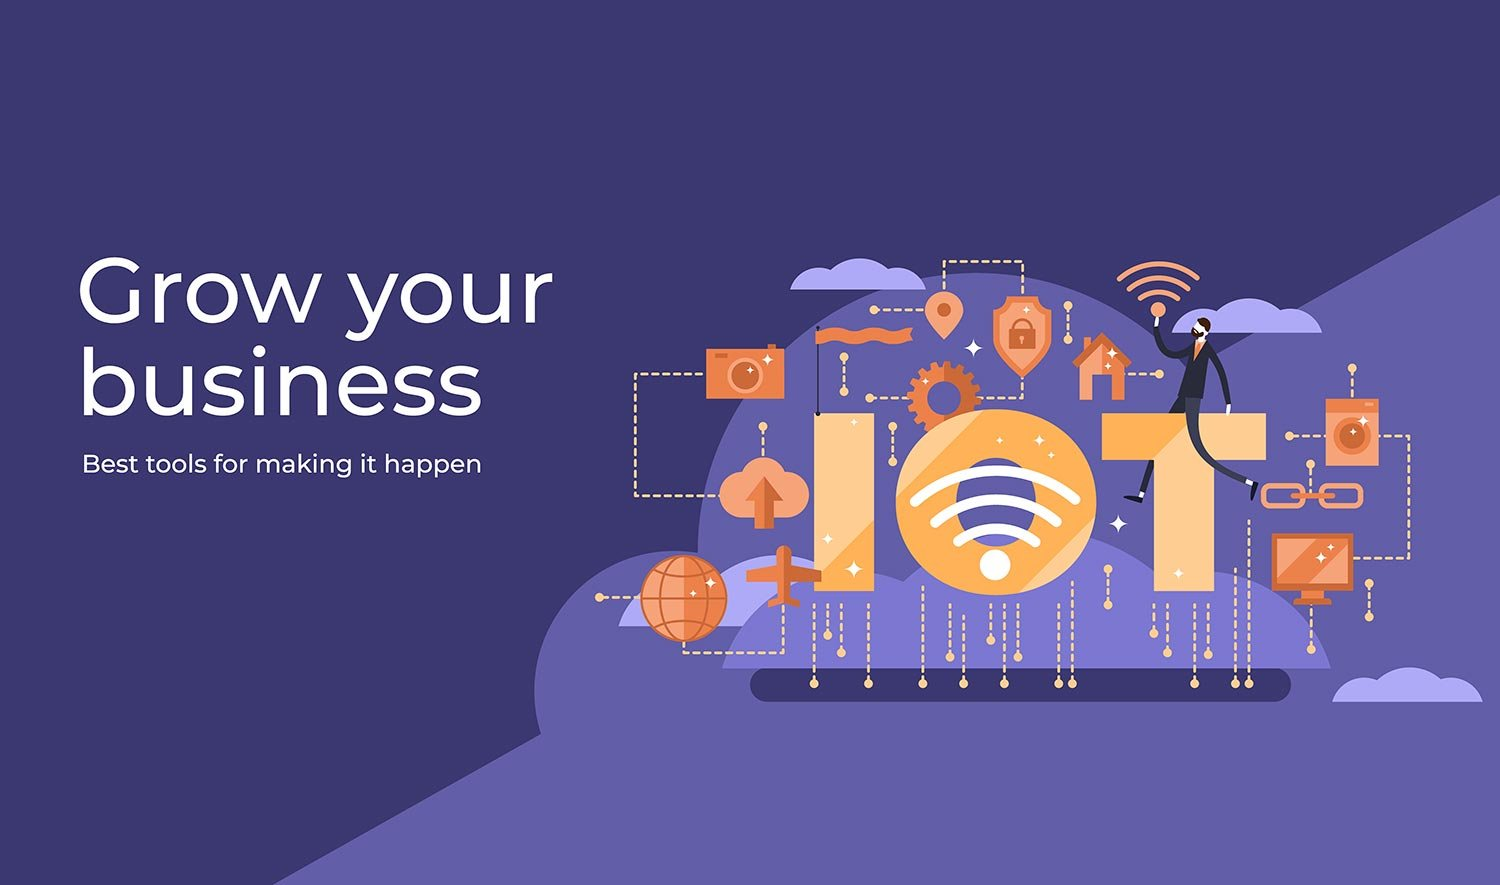 Top 6 Benefits of IoT for Small Business